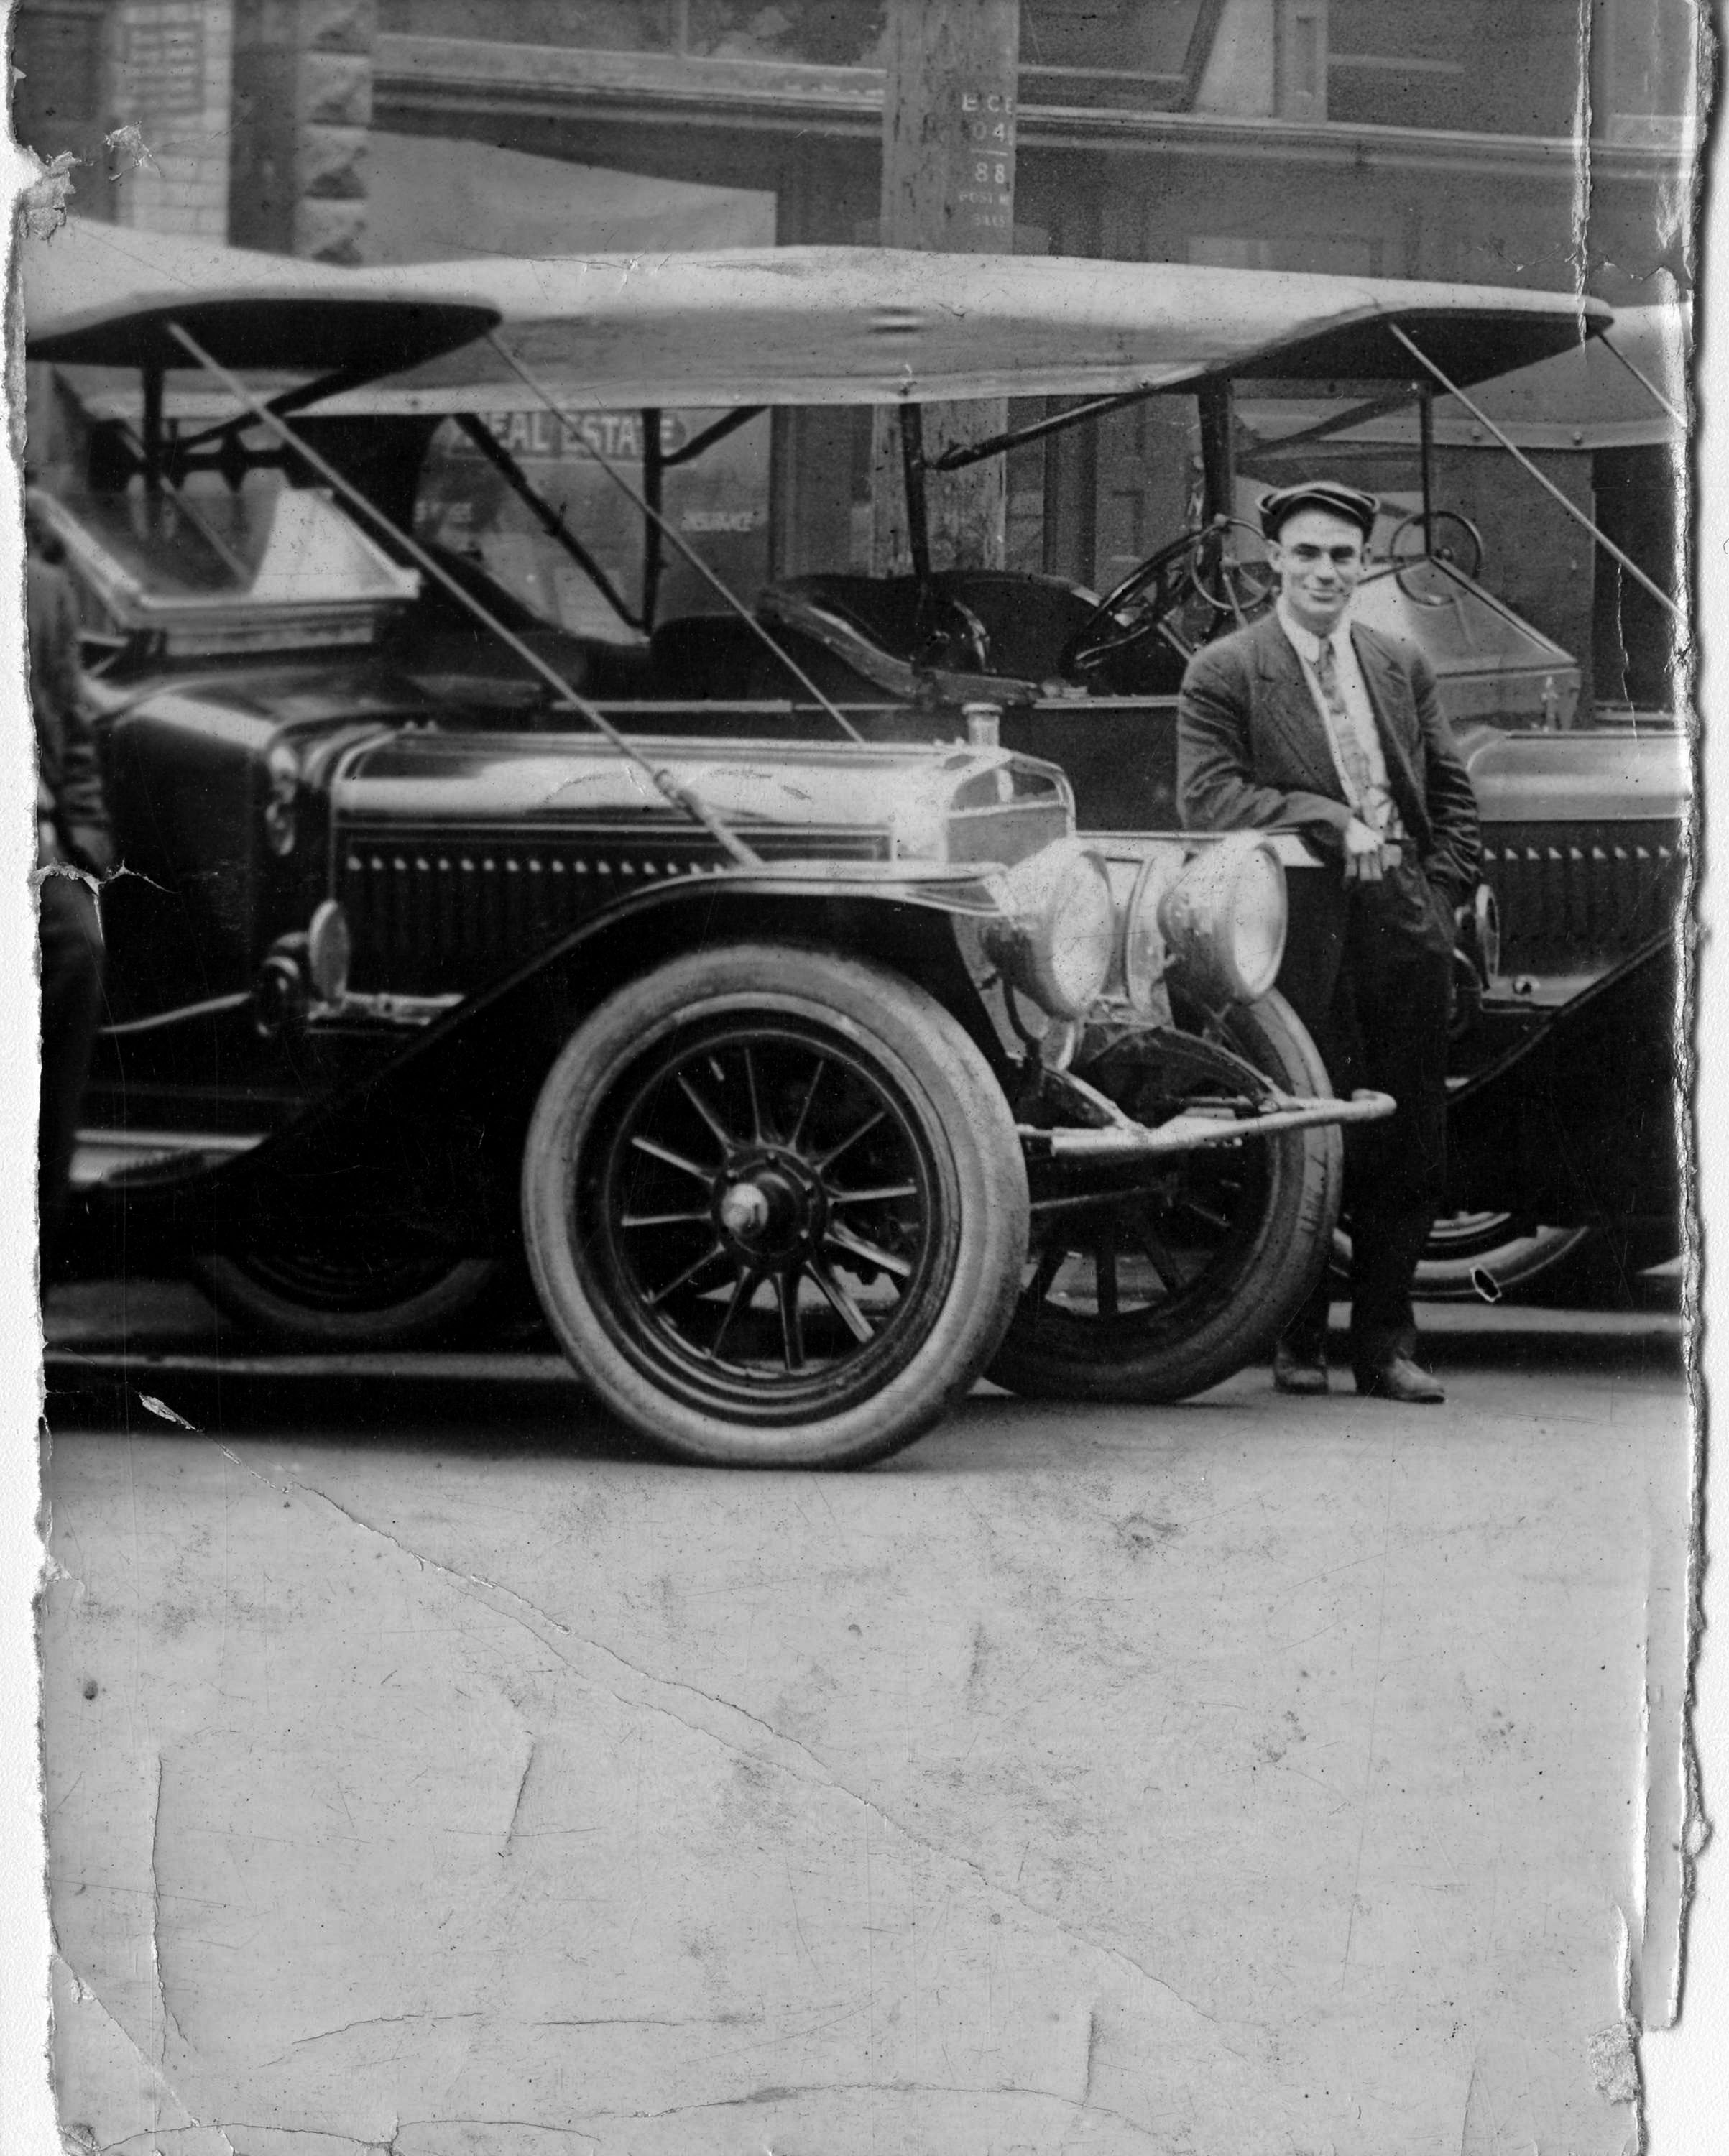 Harry Hooper in 1911. City of Vancouver Archives #371-397